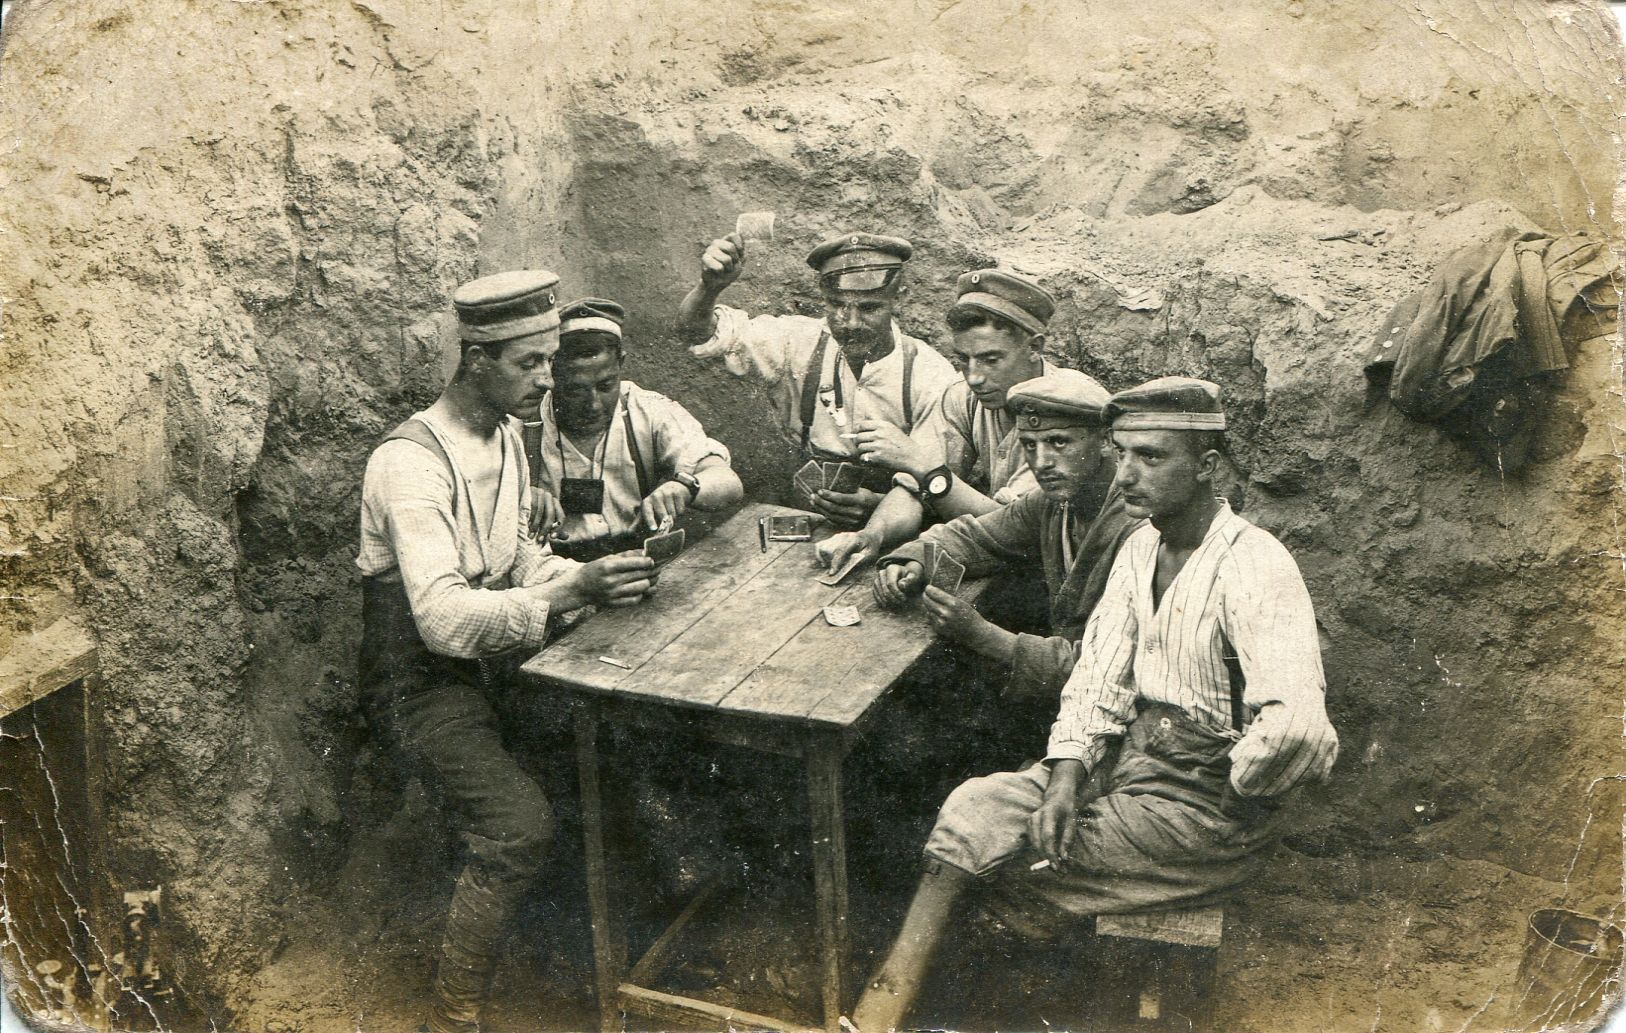 WW1. German soldiers playing cards  in the corner of a trench… WW1. soldats allemands jouant aux cartes dans le coin d'une tranchée ...